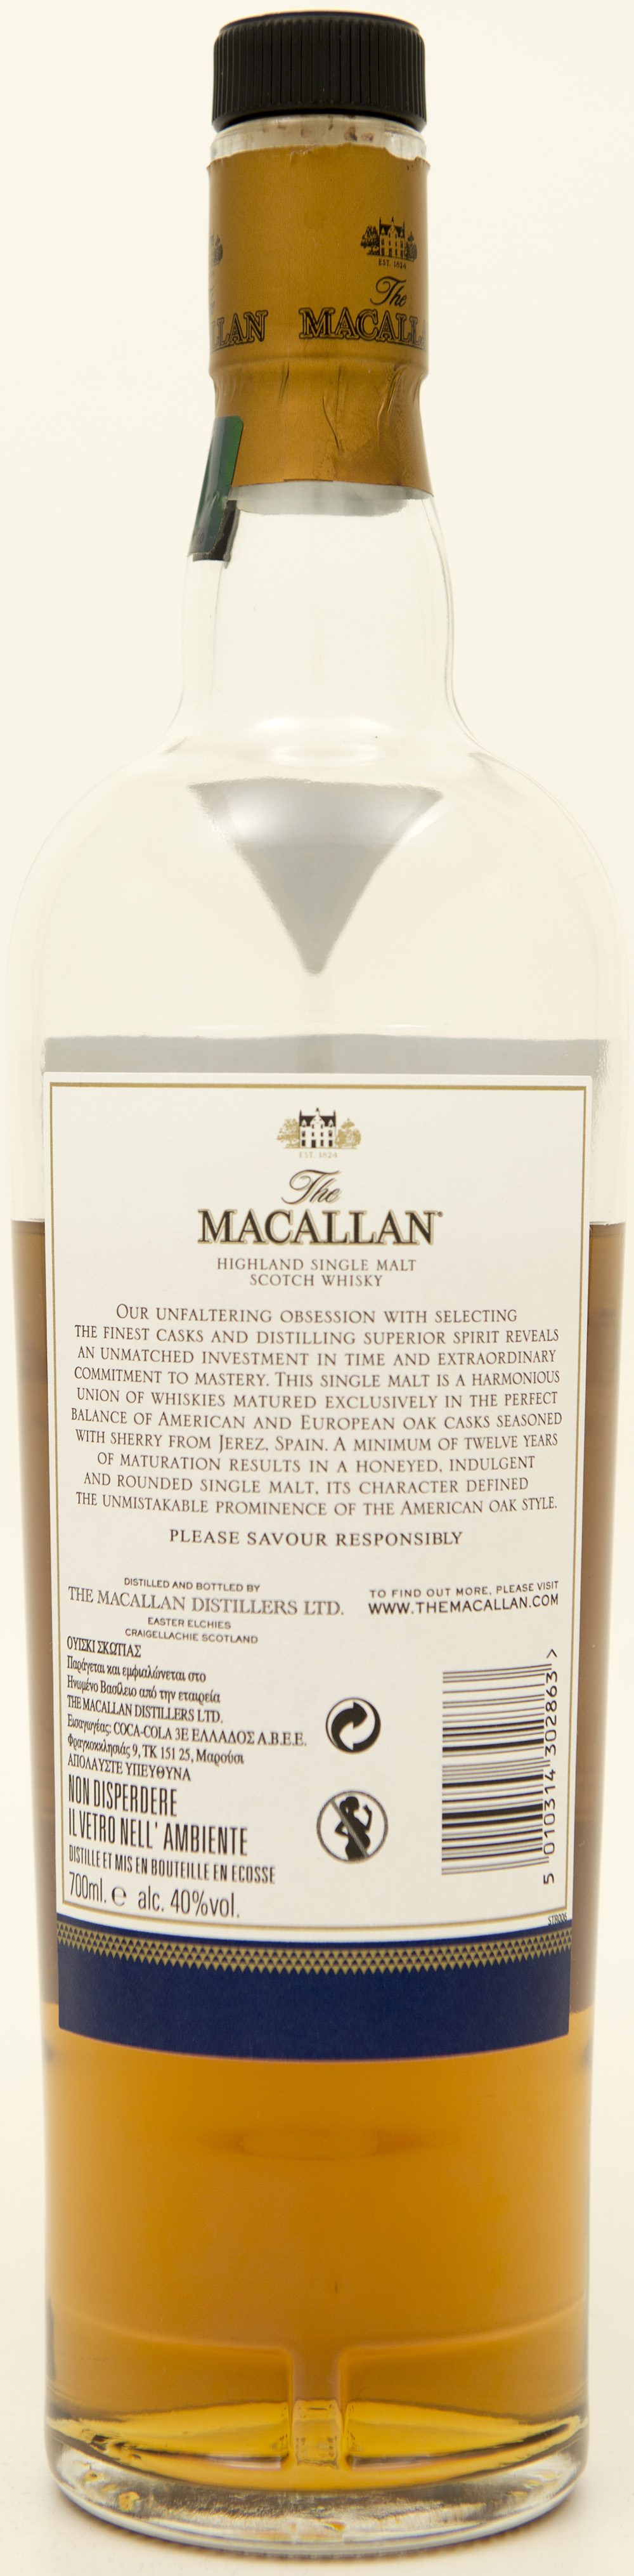 Billede: DSC_3654 - The MacAllan 12 Double Cask - bottle back.jpg